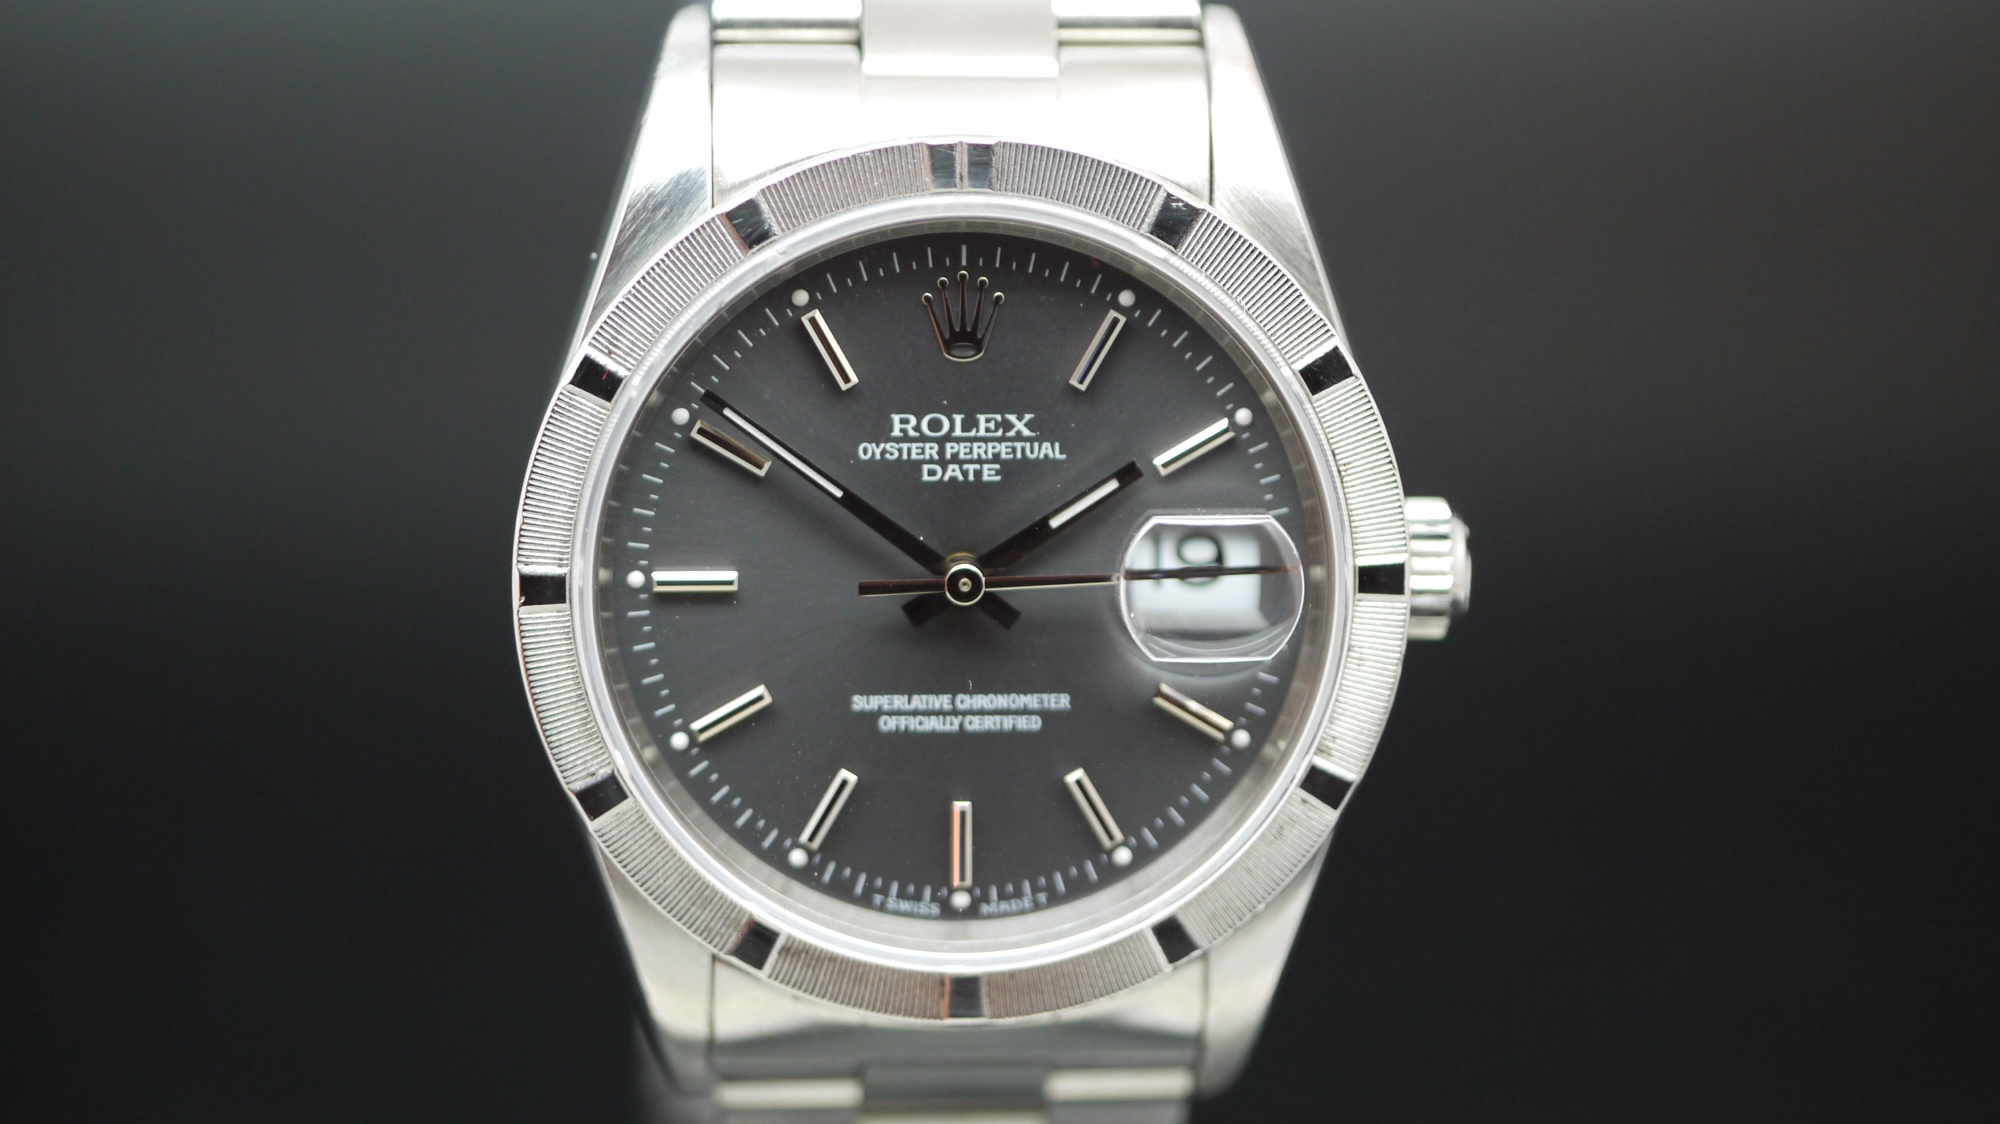 Rolex Oyster Perpetual Date 15210 Circa 1995 James Ross